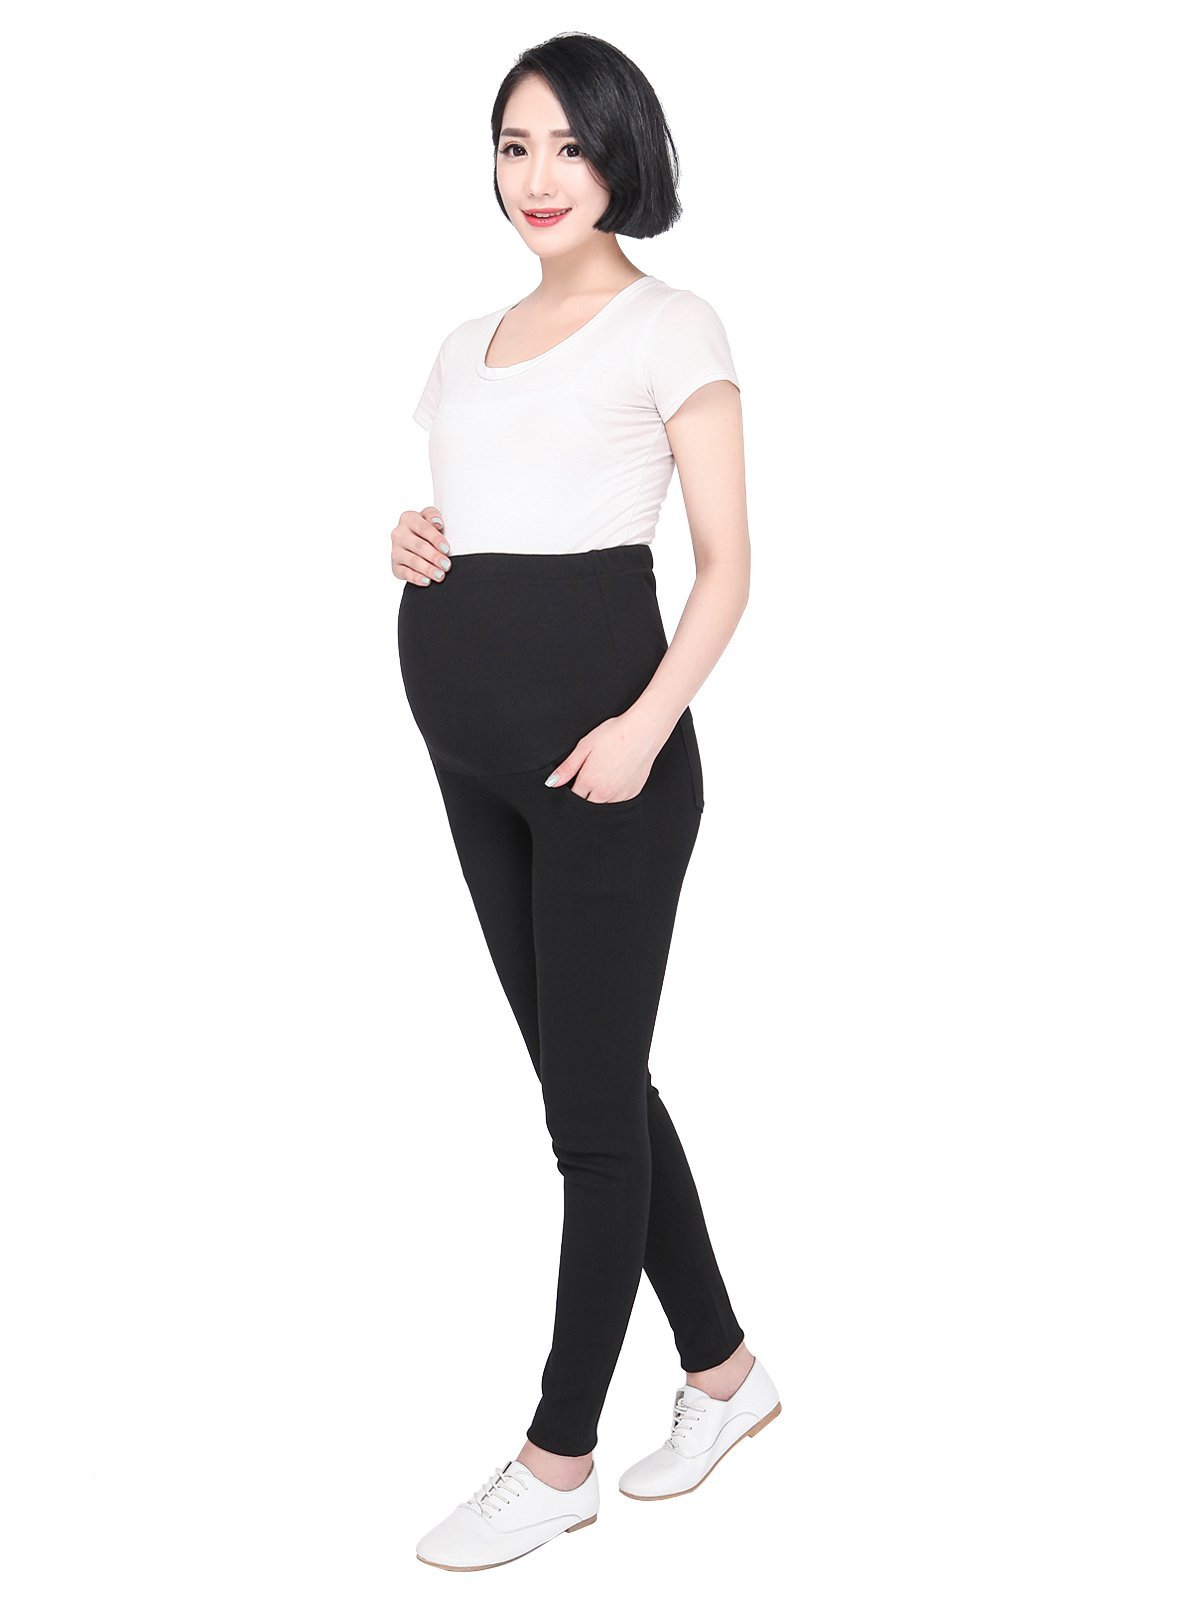 FINEMORE Women Maternity Pants Lounge Over Bump Pregnancy Support Leggings (Bootleg/Solid/Stripe) for Expecting Mom Black XL